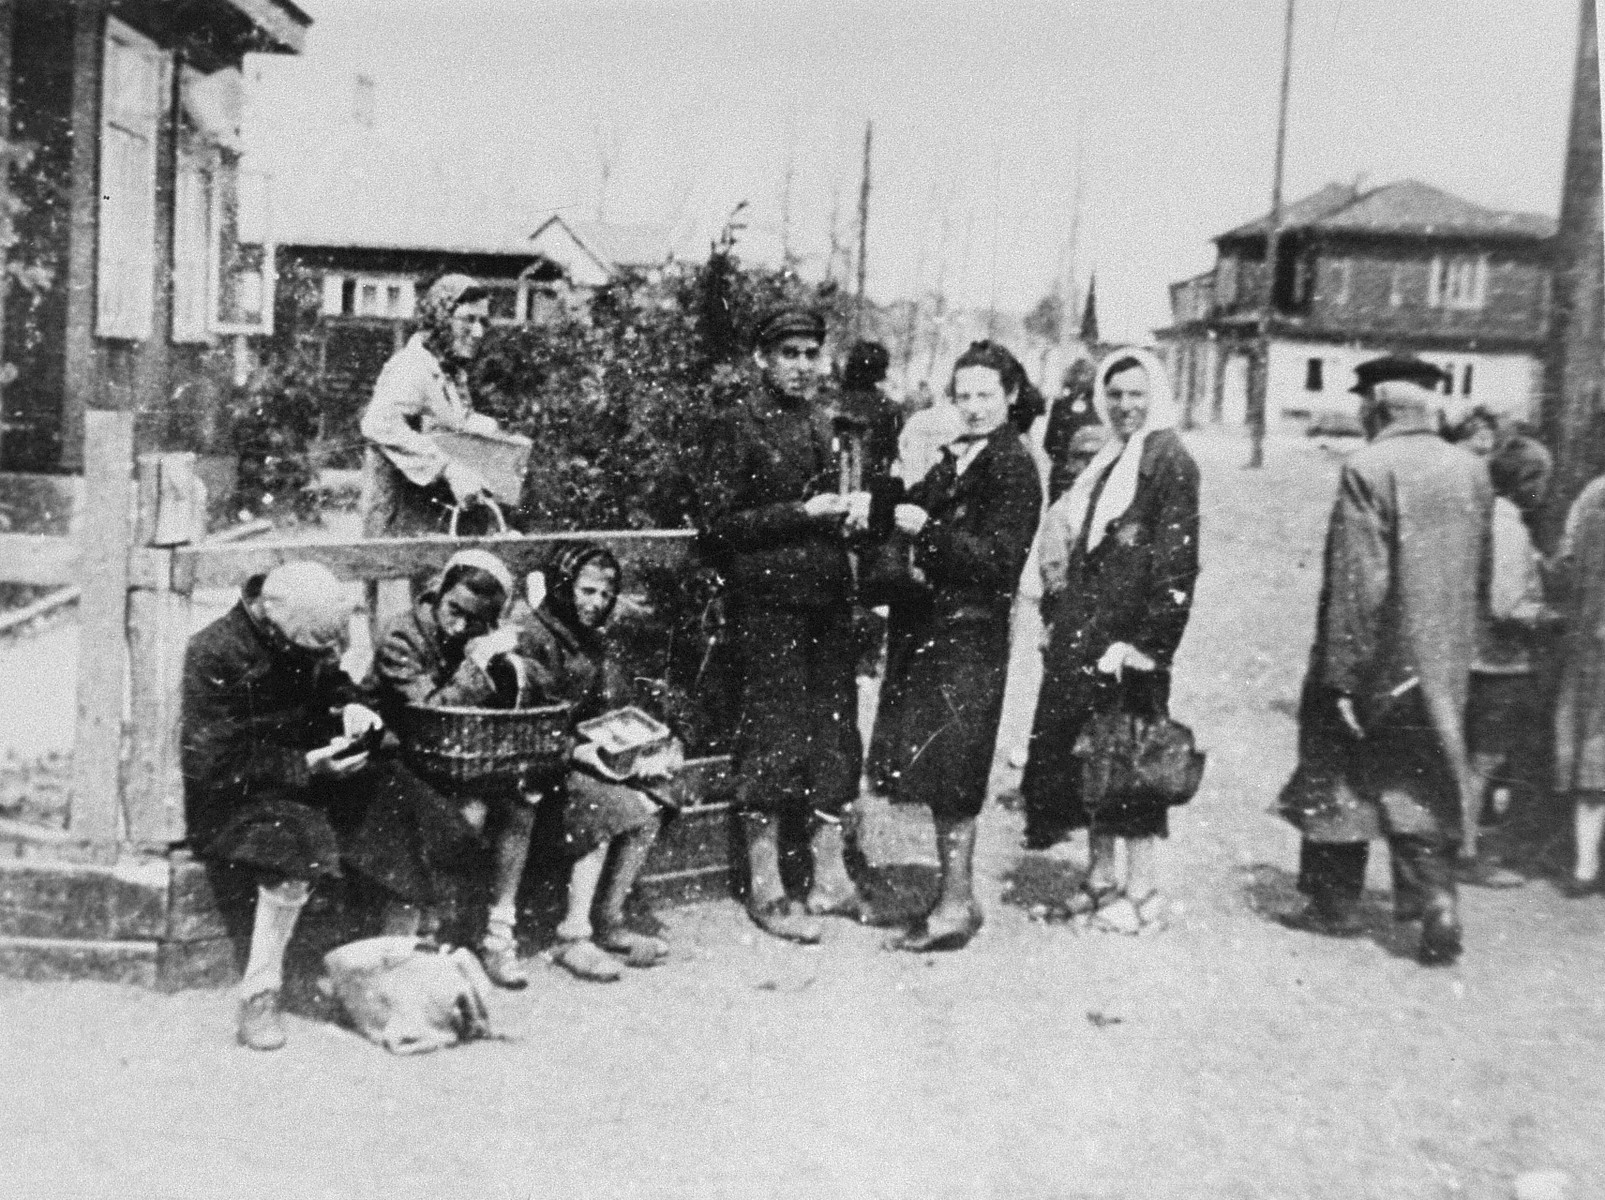 A group of Jewish women are gathered near the market square in the Kovno ghetto.